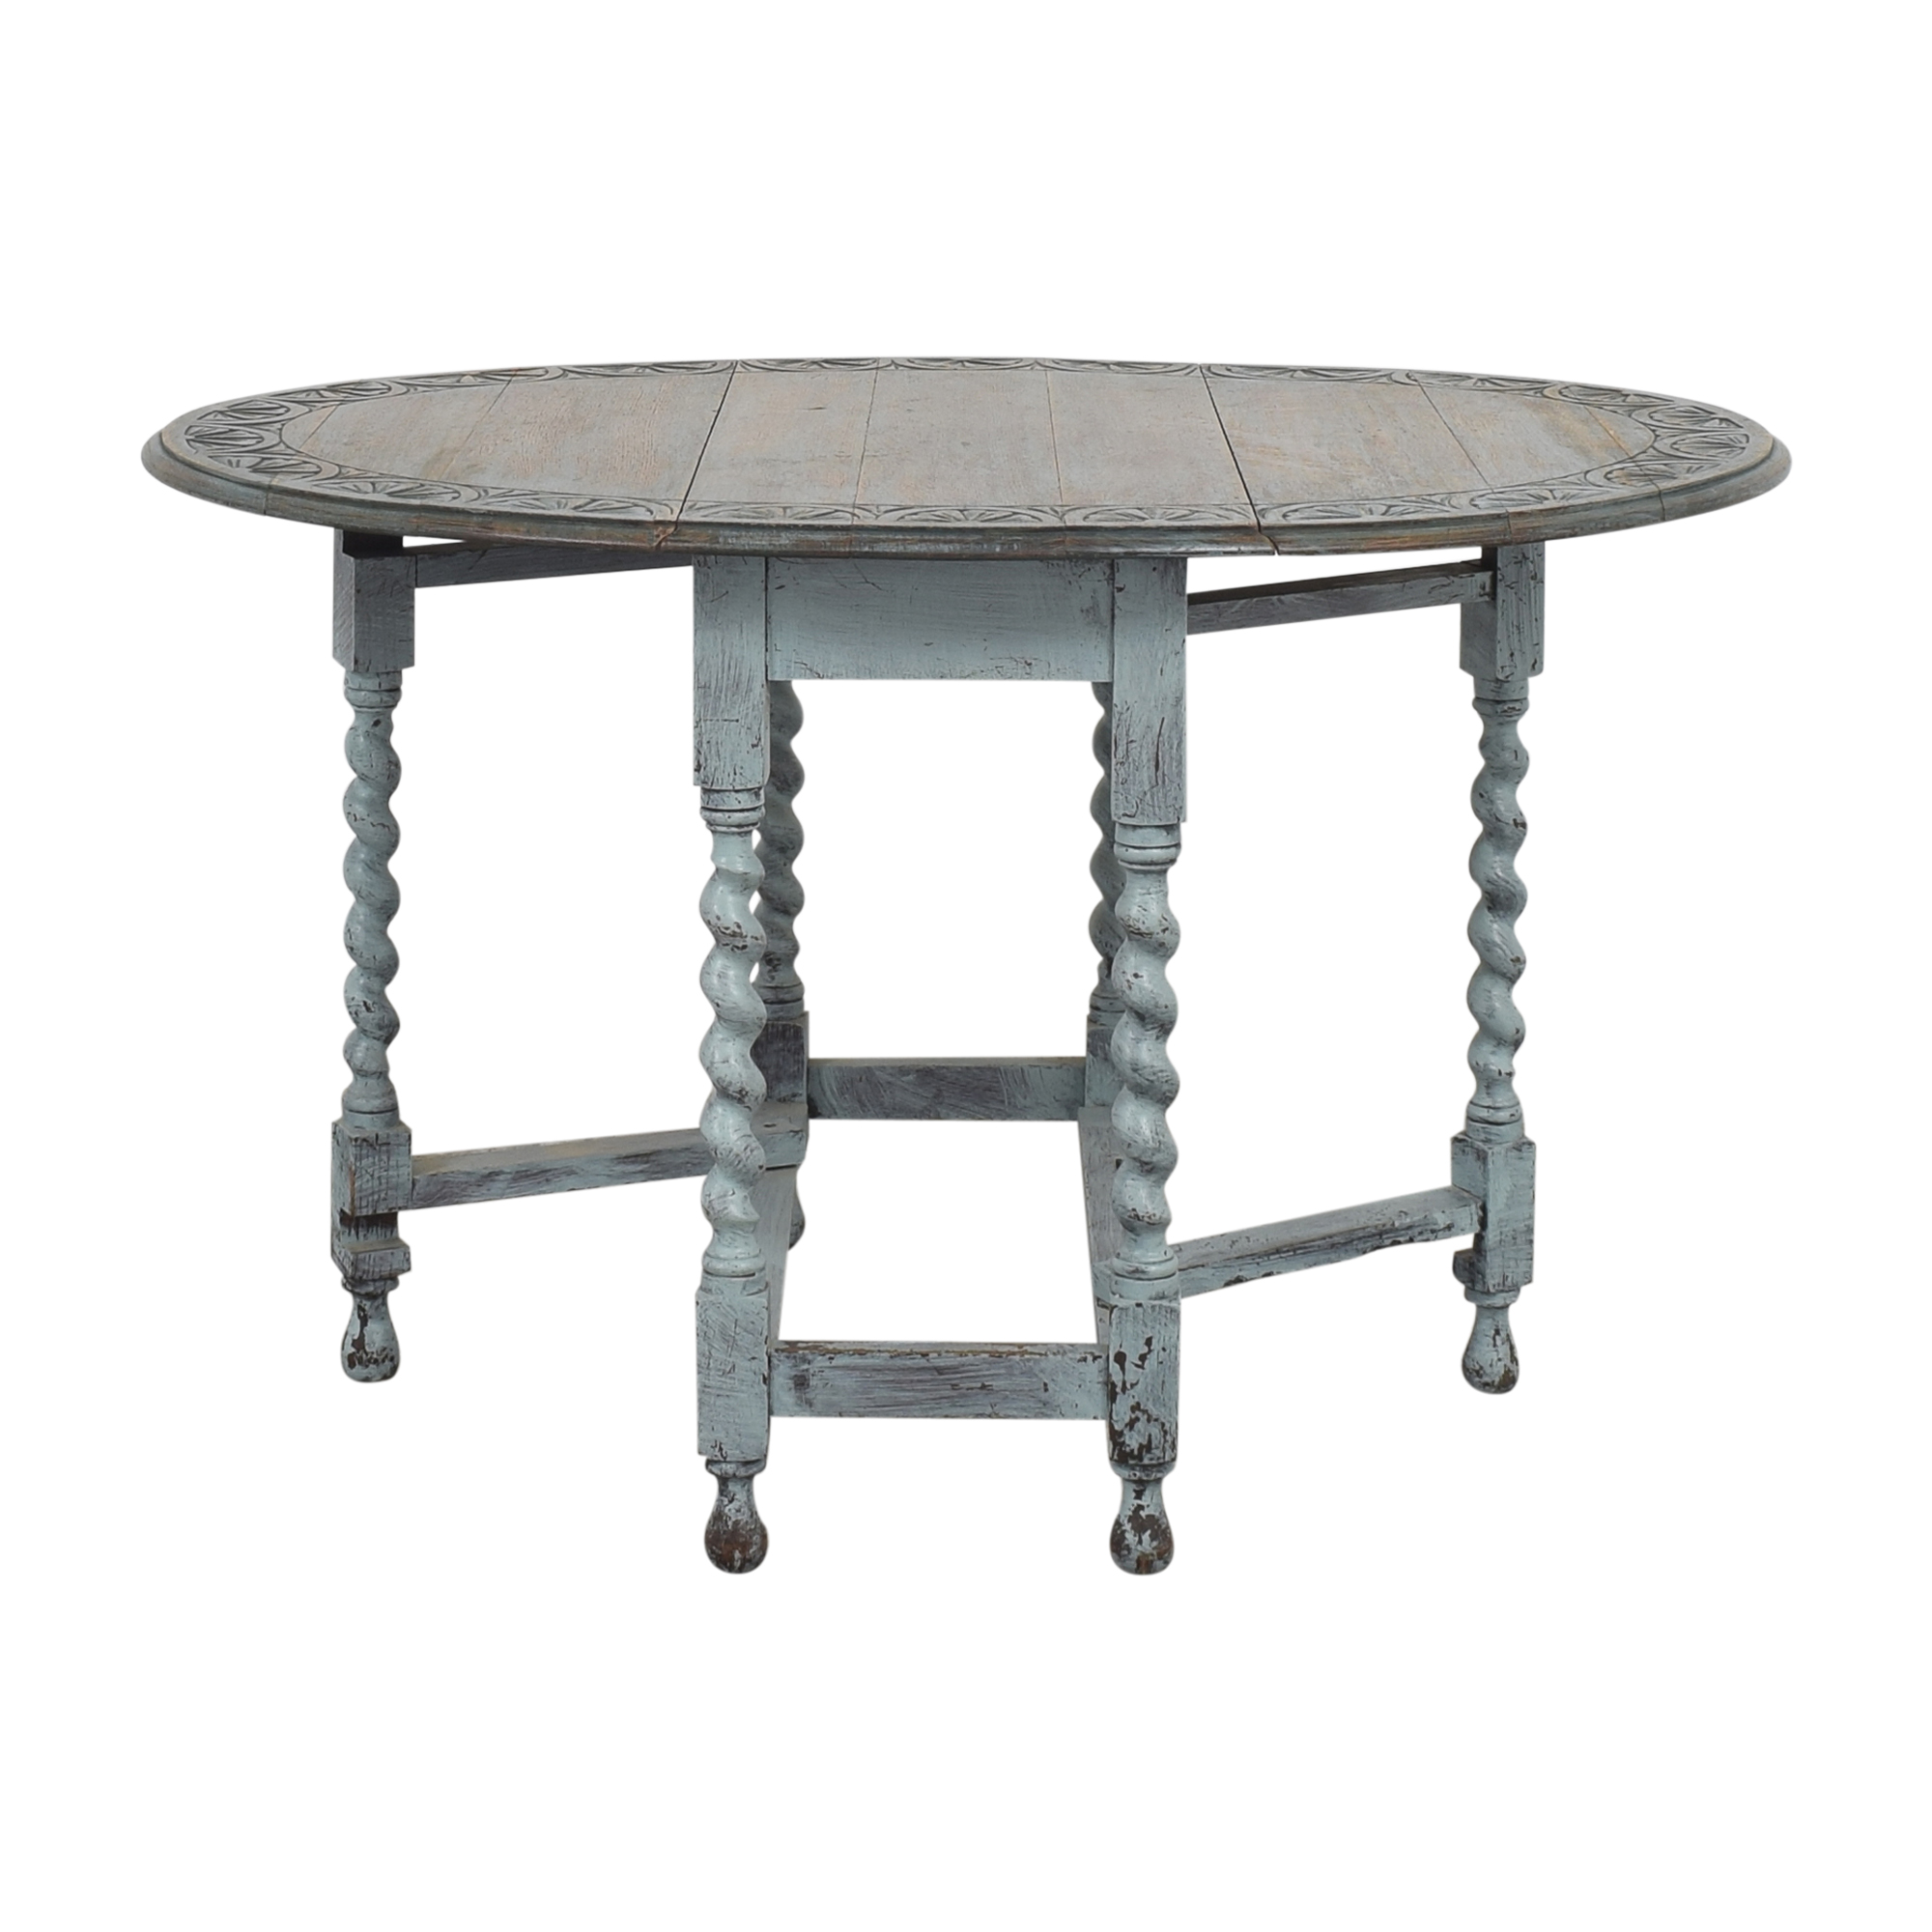 Oval Drop Leaf Table / Tables